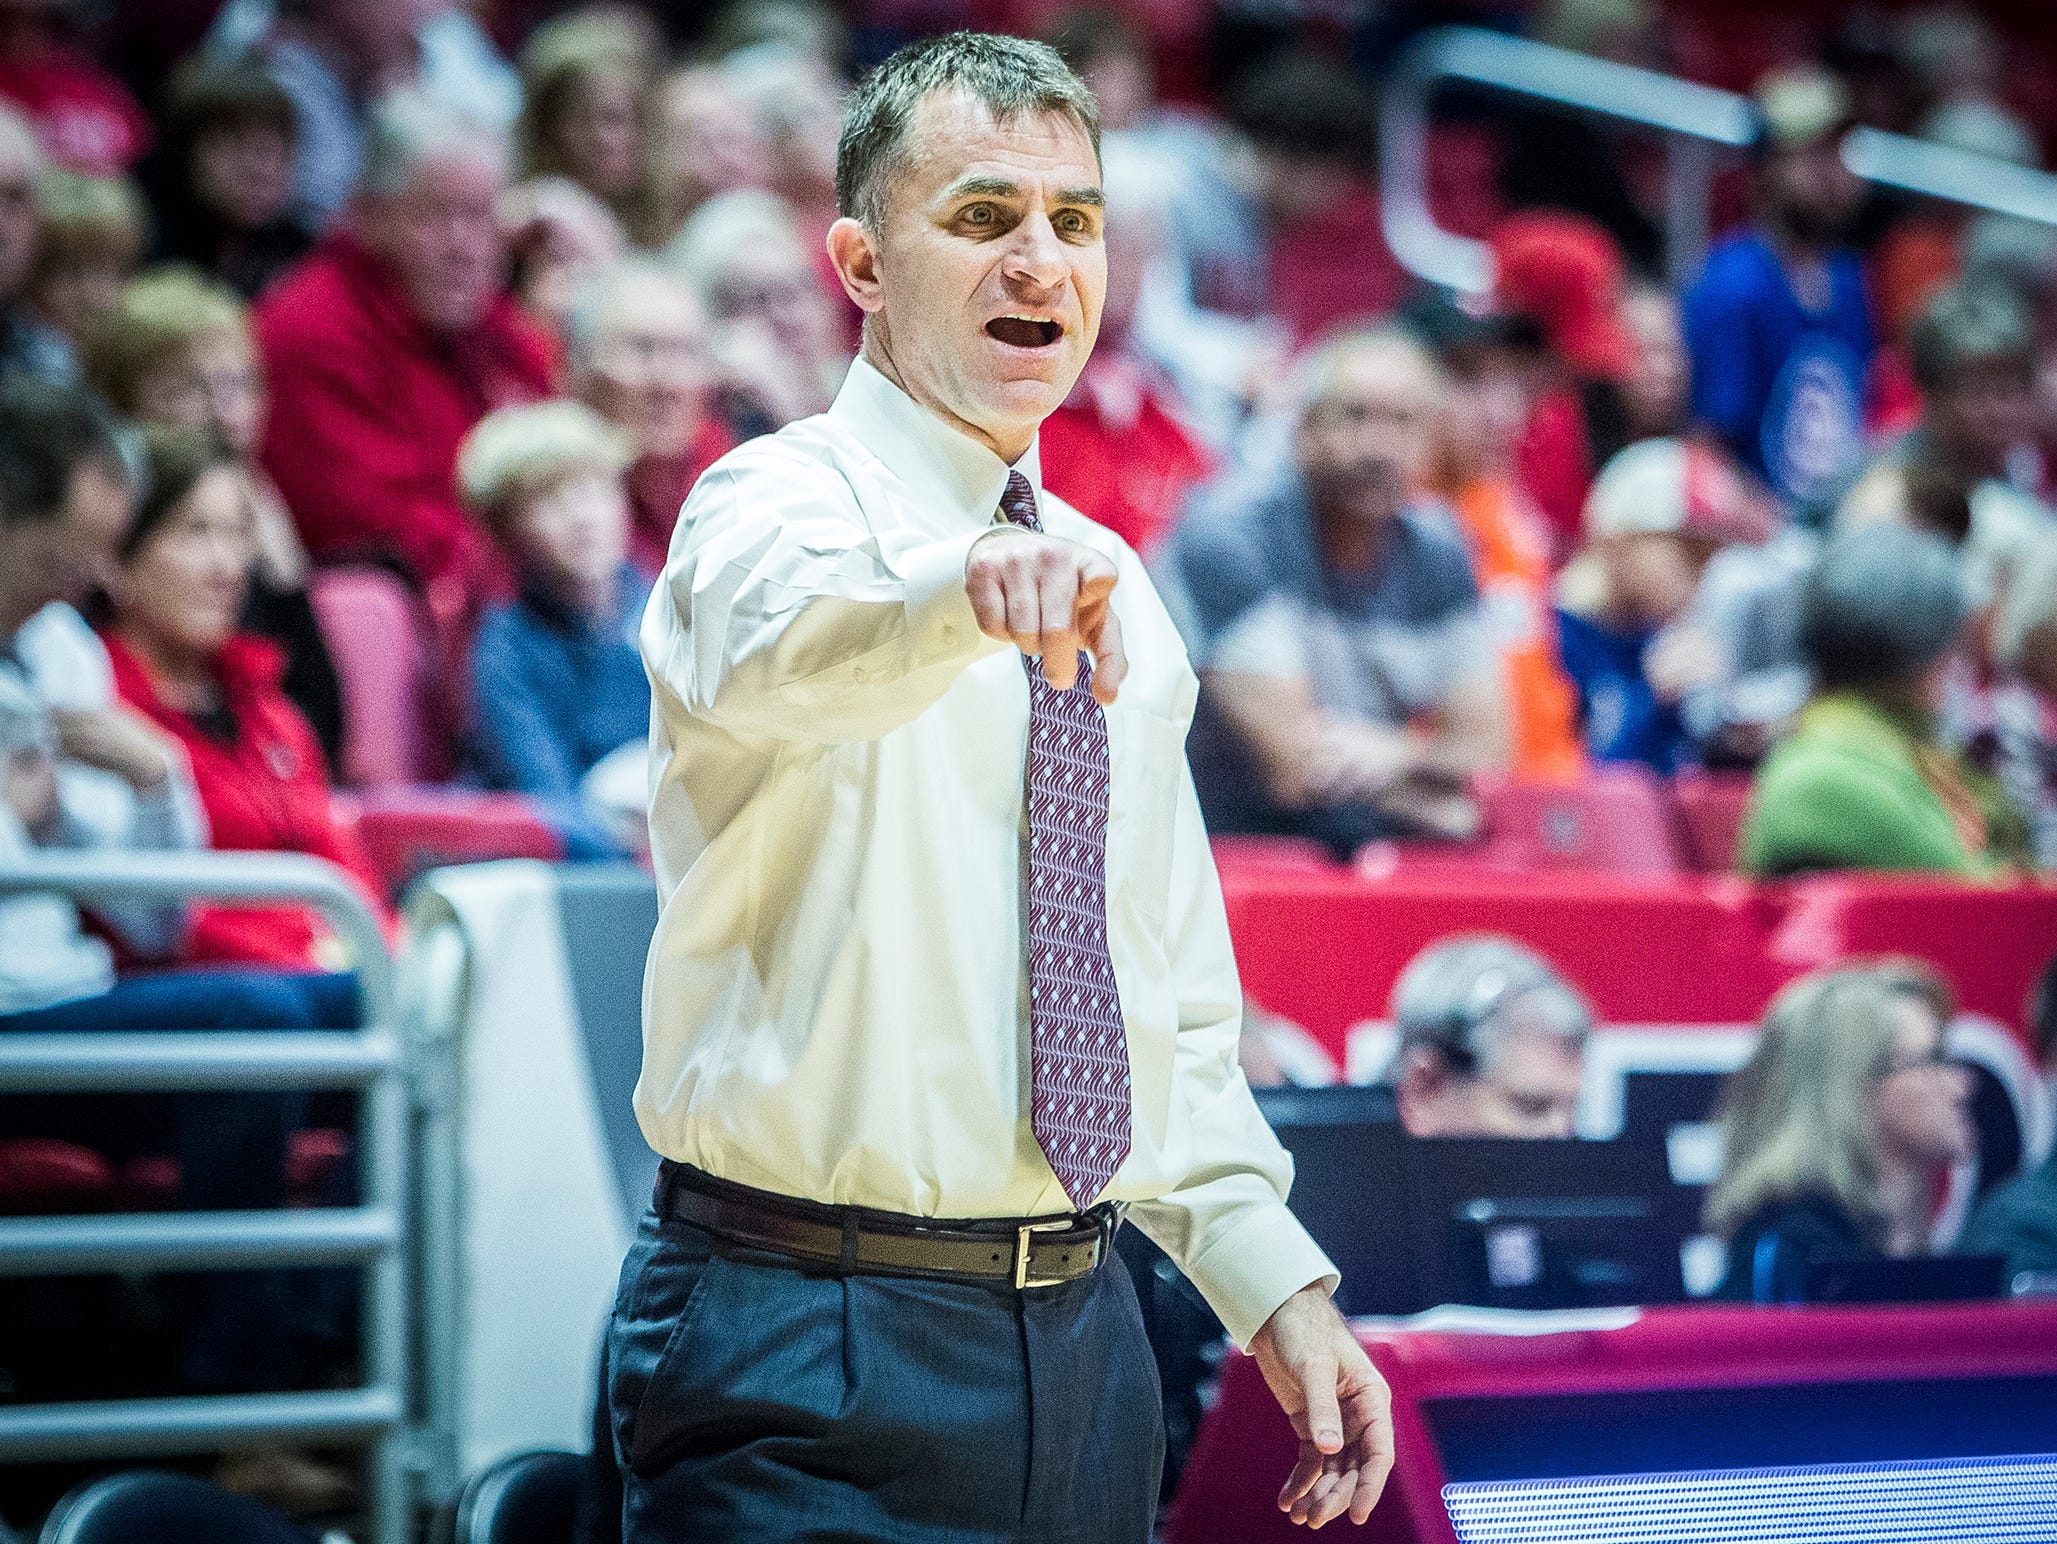 Ball State's James Whitford coaches against Delaware State during their game at Worthen Arena Saturday, Dec. 29, 2018.